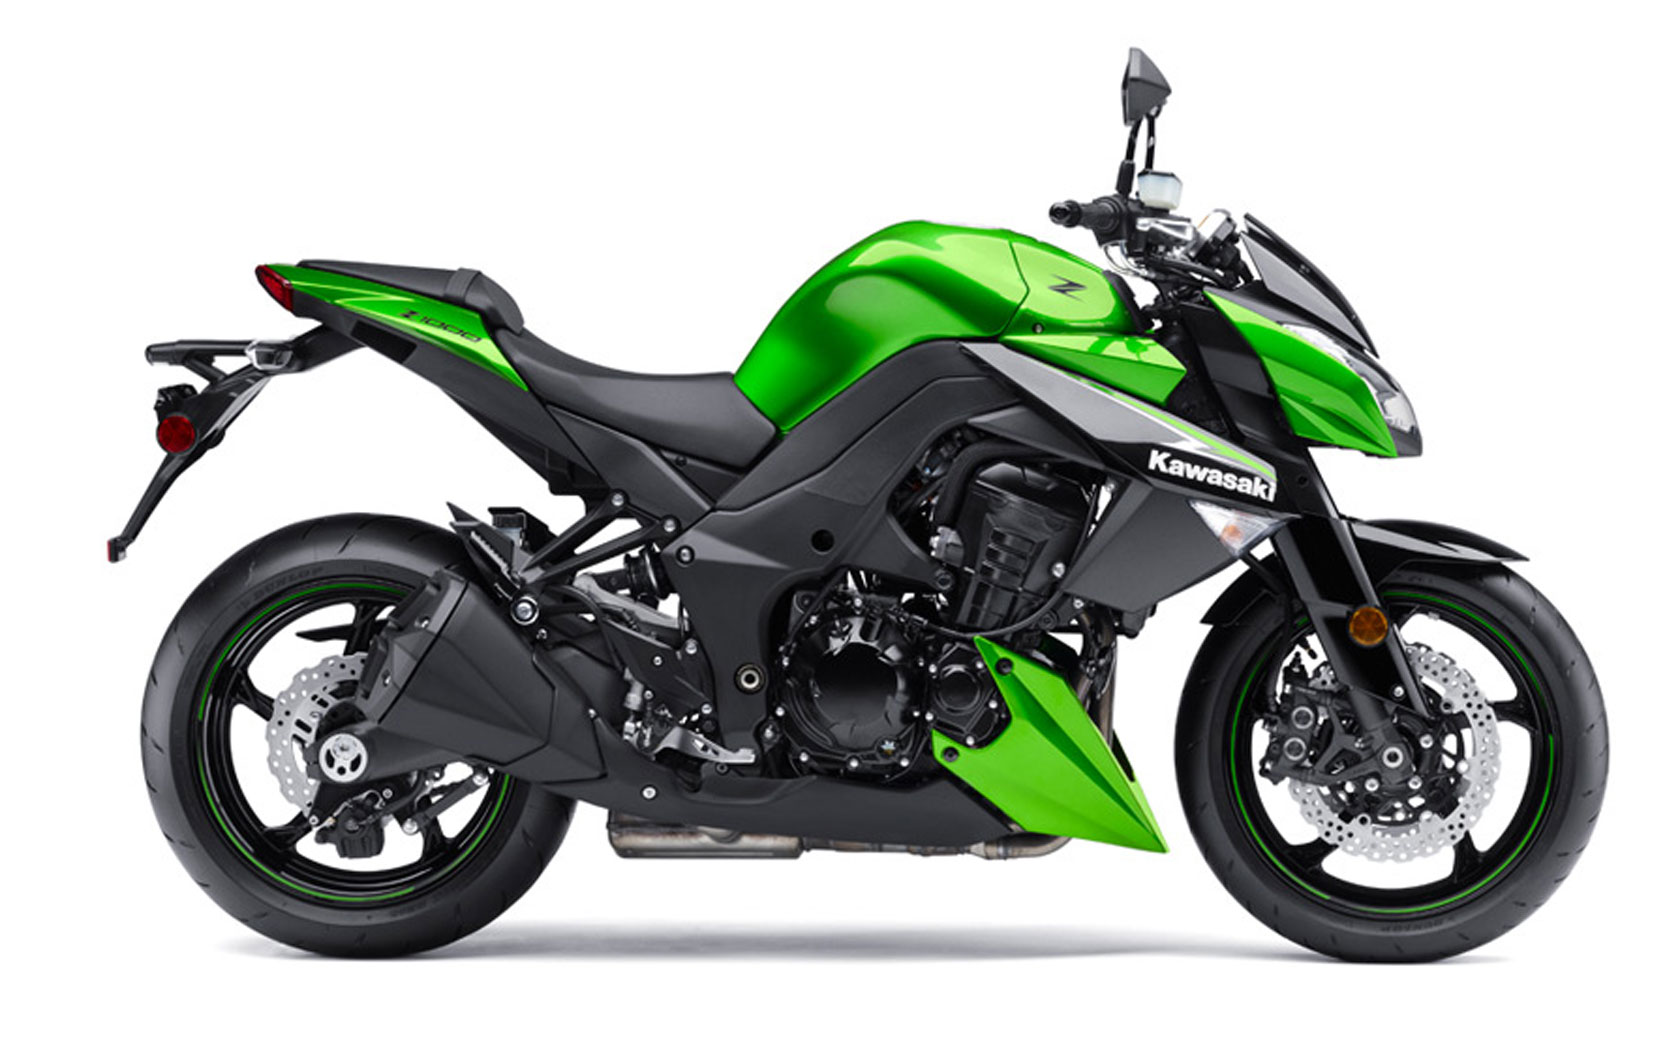 kawasaki z1000 review and photos. Black Bedroom Furniture Sets. Home Design Ideas